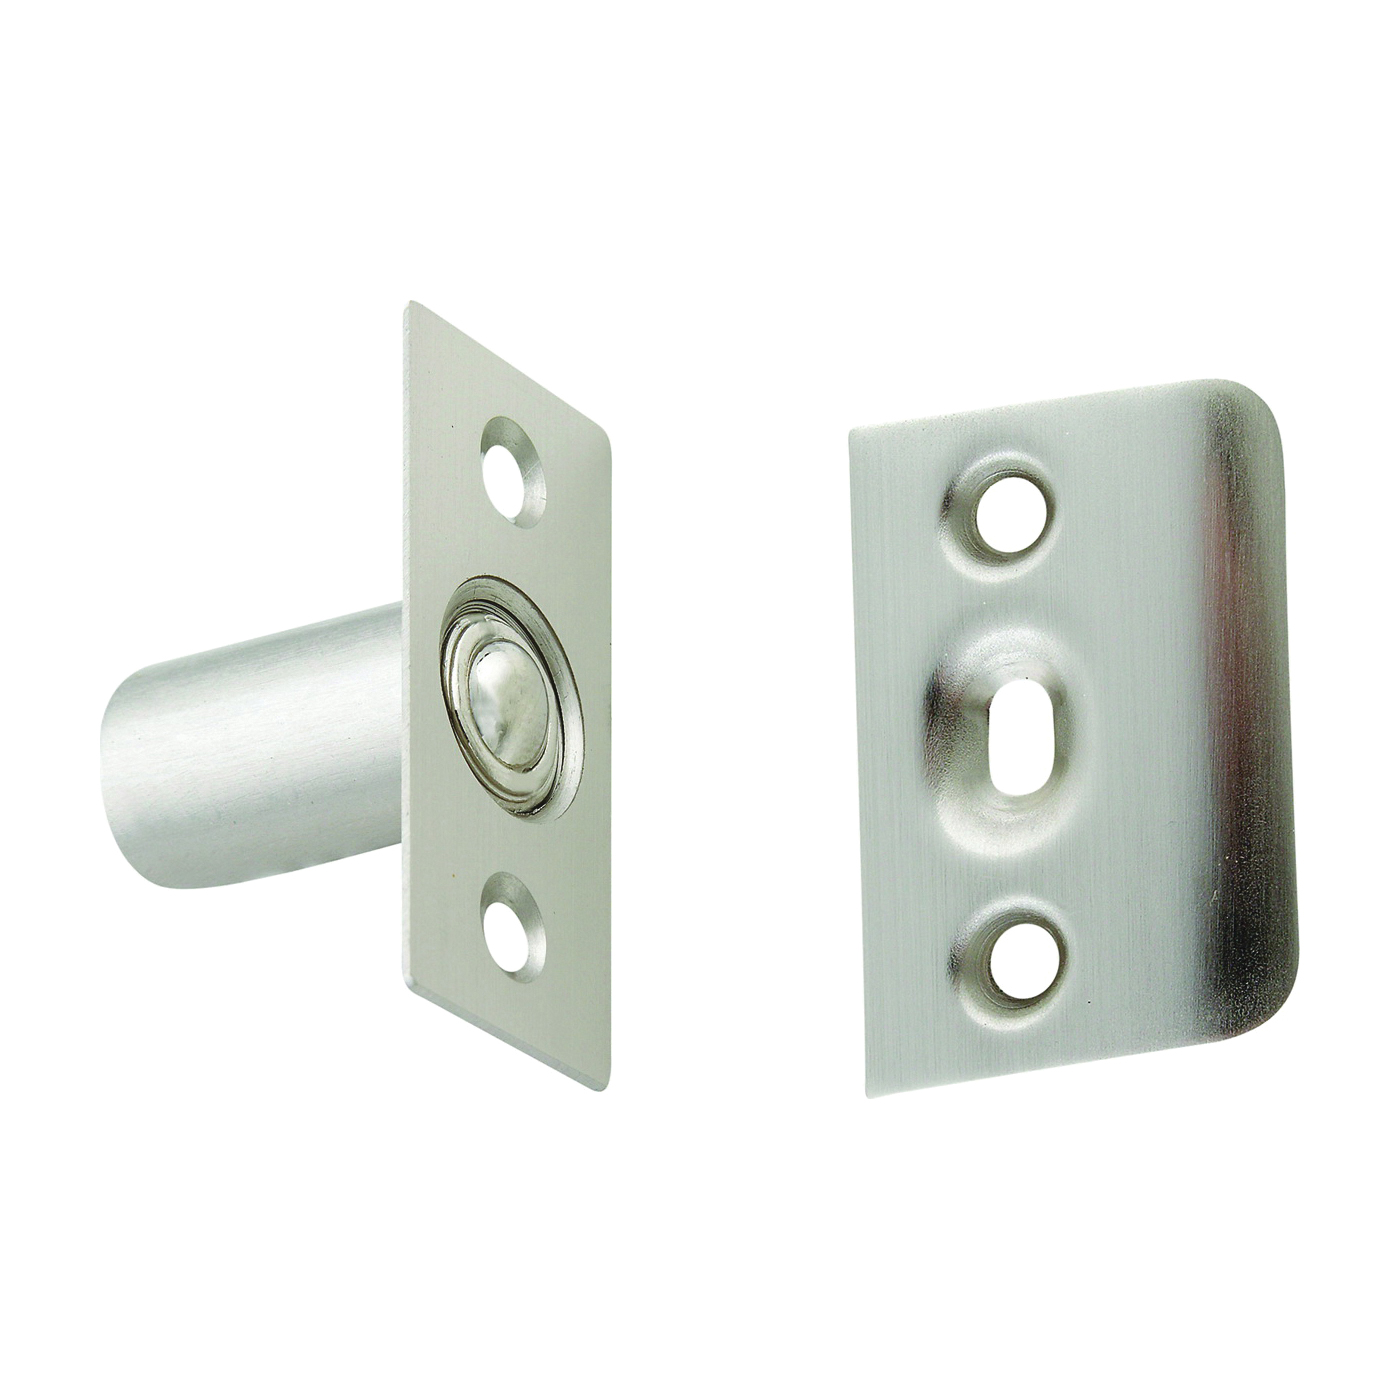 Picture of National Hardware MPB716 Series N830-282 Ball Catch, Steel, Satin Nickel